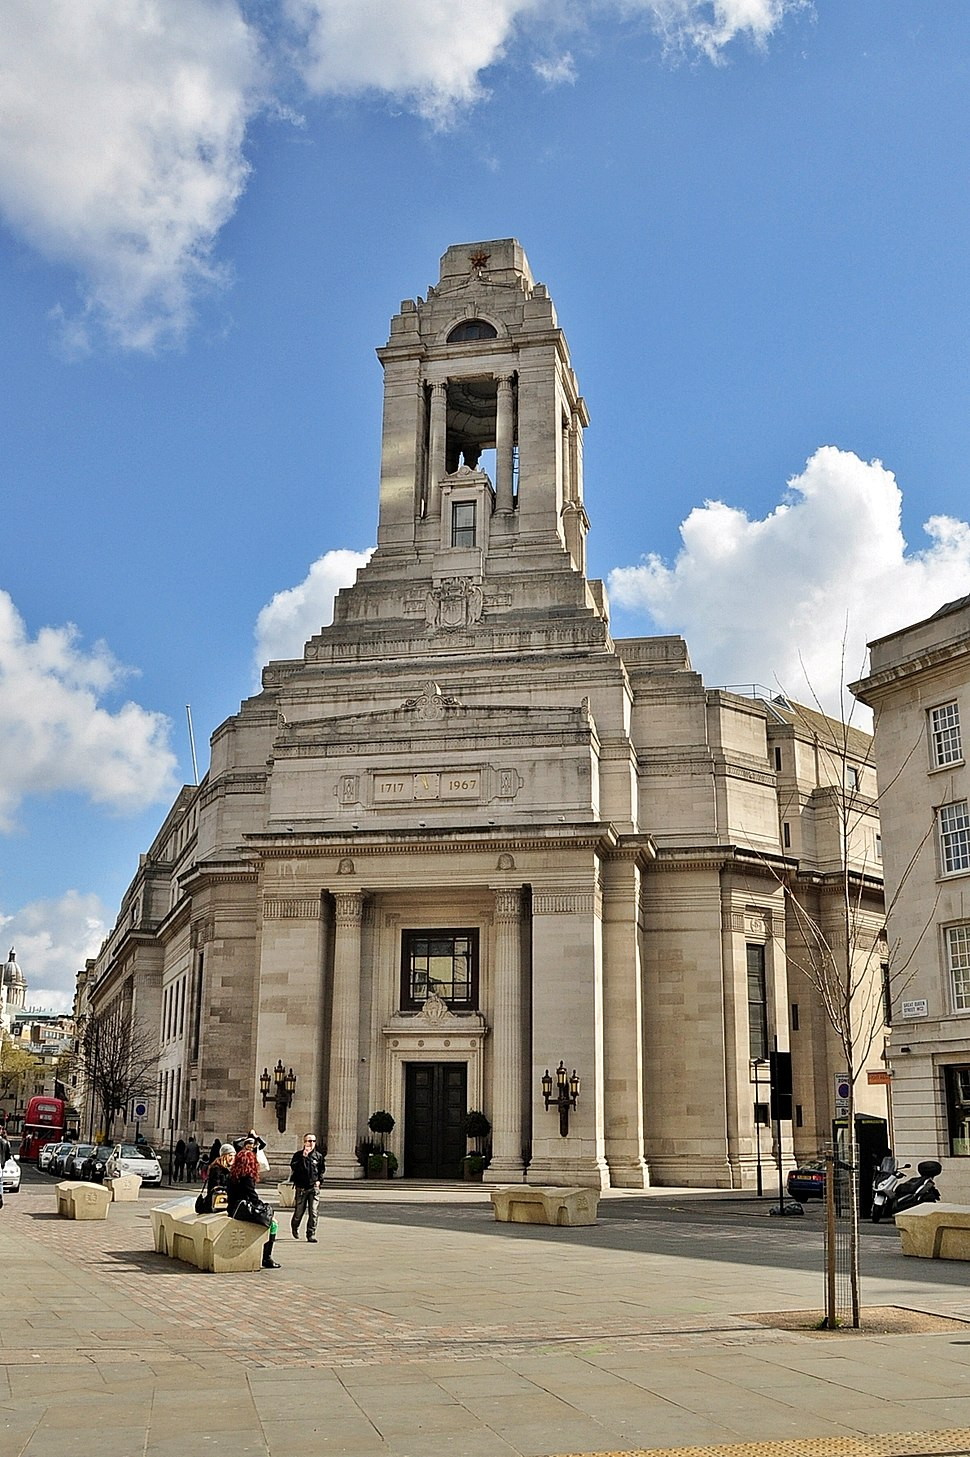 Freemasons' Hall, London